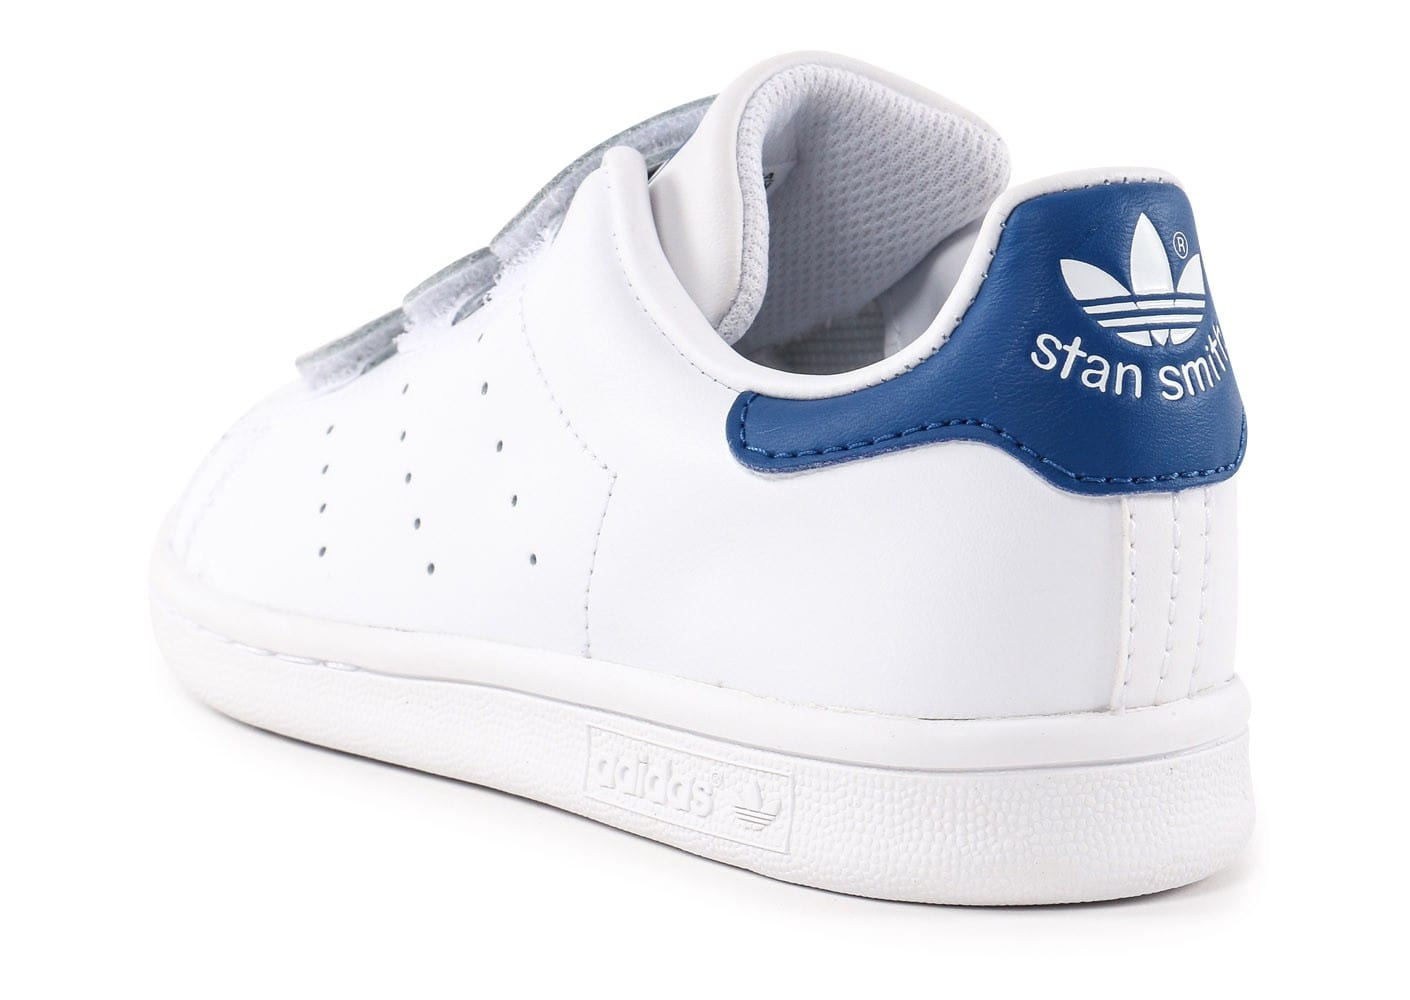 adidas stan smith enfant blanche et bleue chaussures adidas chausport. Black Bedroom Furniture Sets. Home Design Ideas